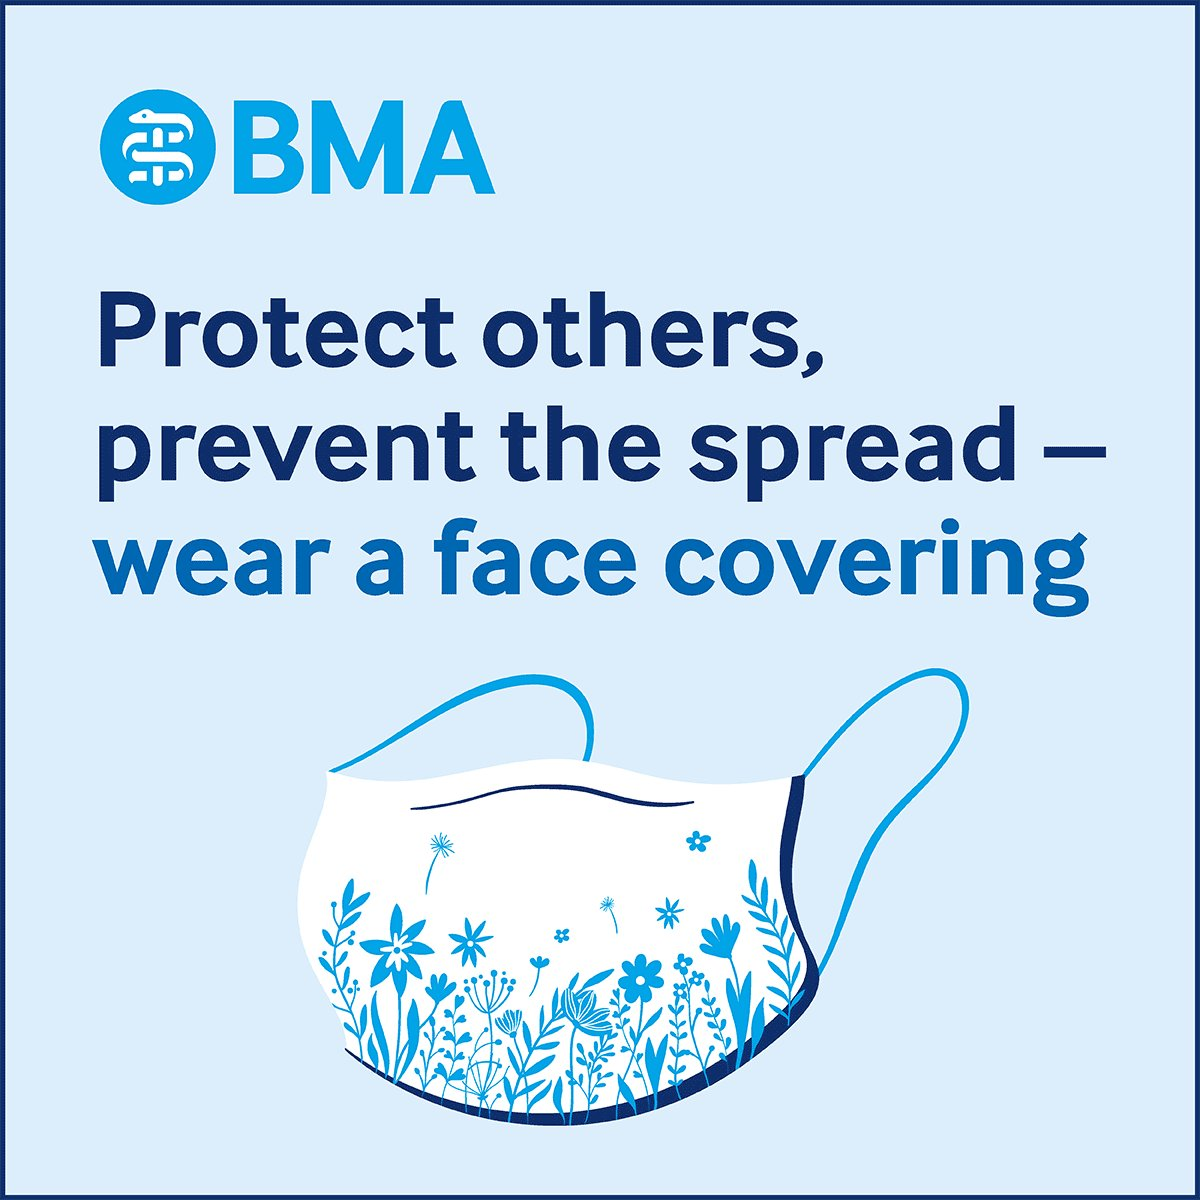 ❗ We believe it should be mandatory in Wales for face coverings to be worn in all public indoor spaces & where it isn't possible to socially distance.  ❗ There needs to be clear public messaging about why it is necessary.  ❗ We must do all we can to prevent the spread. RT